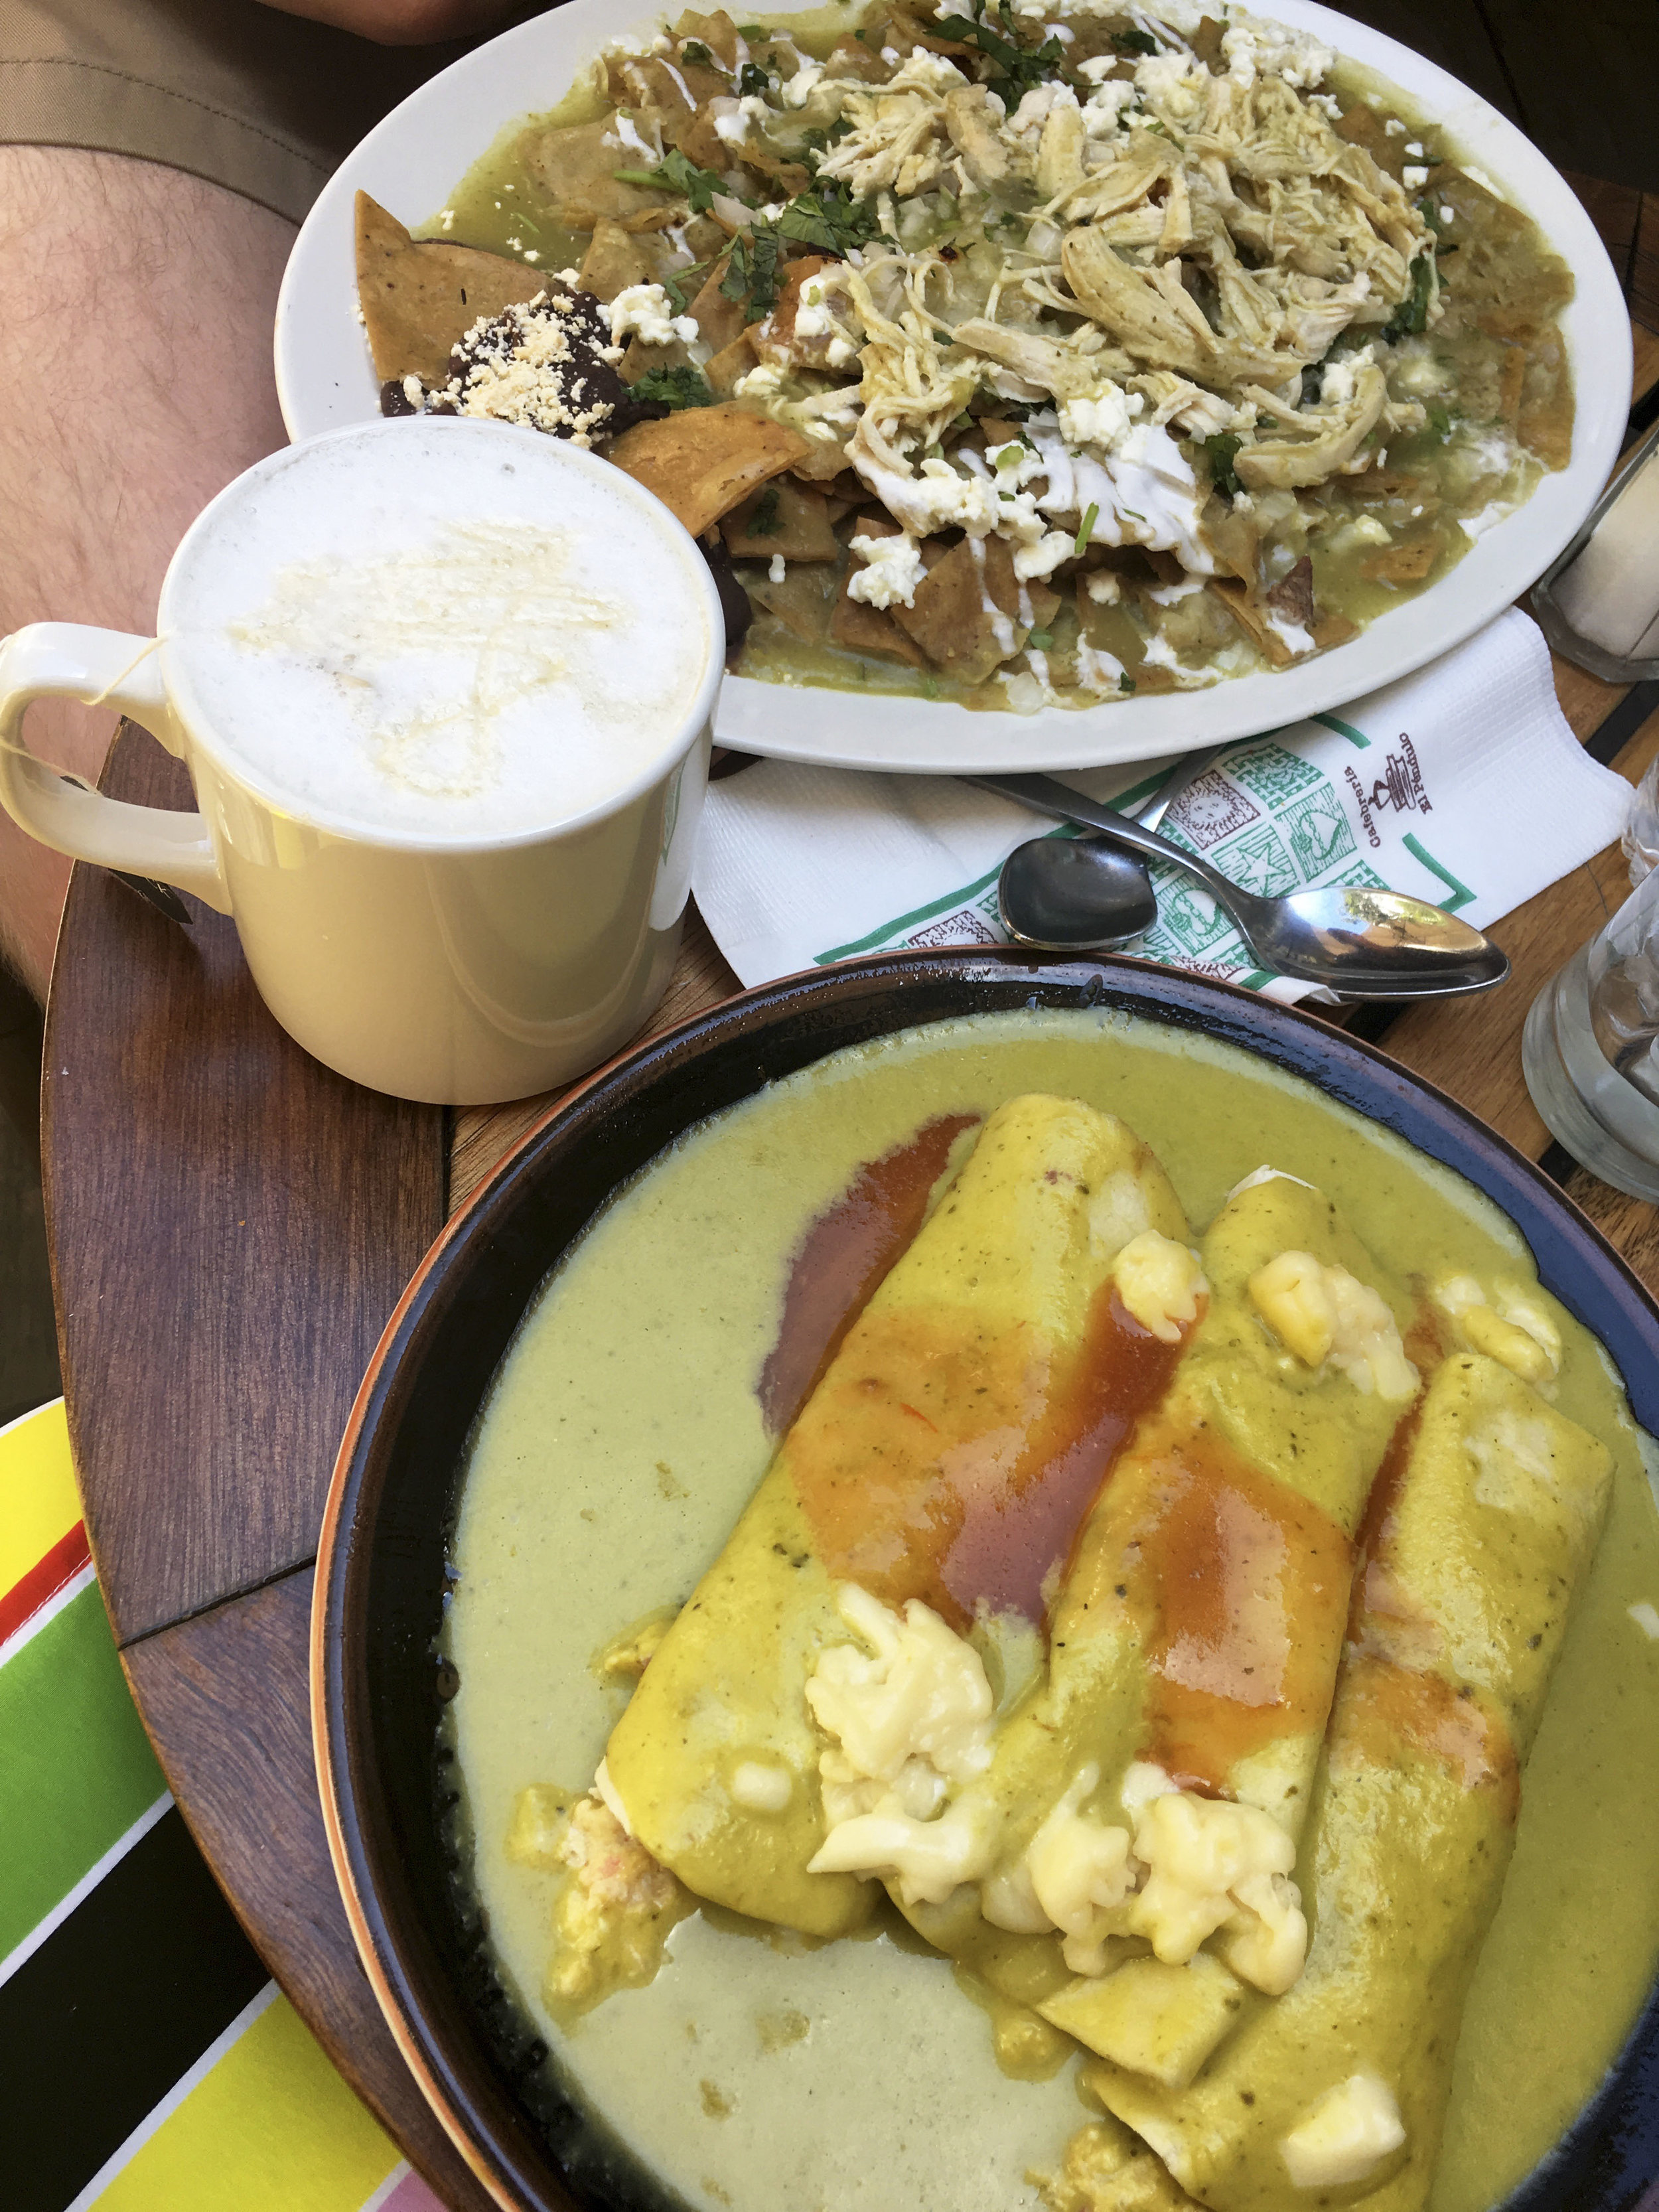 Krity S Mexico City Breakfast